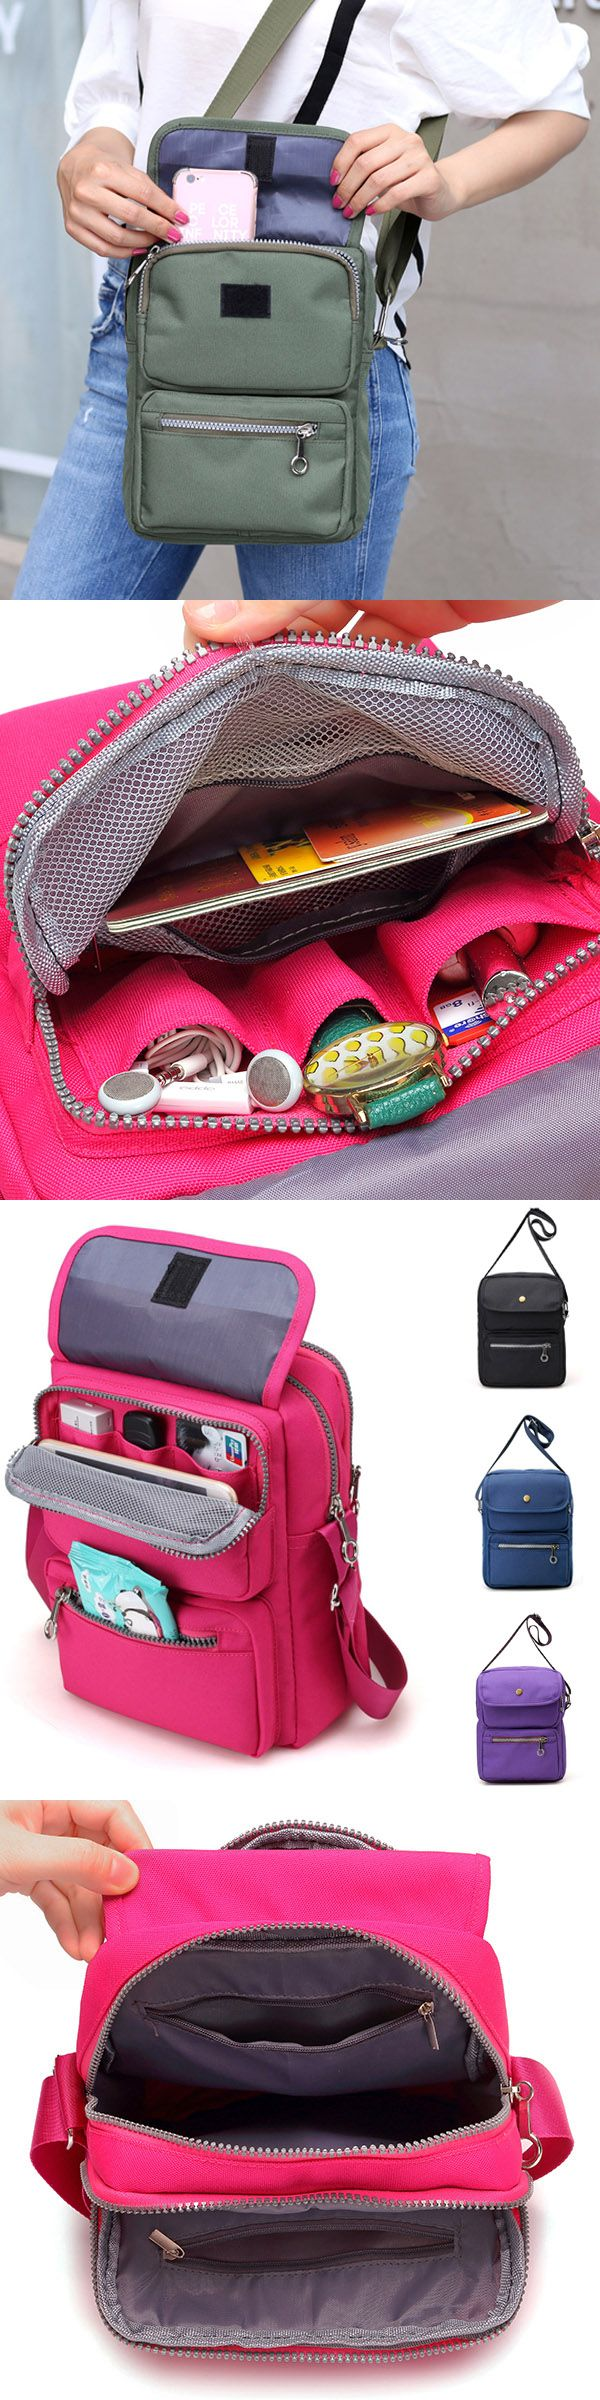 US$14.46 Women Nylon Travel Passport Bag Crossbody Travel Bag Useful Shoulder Bag